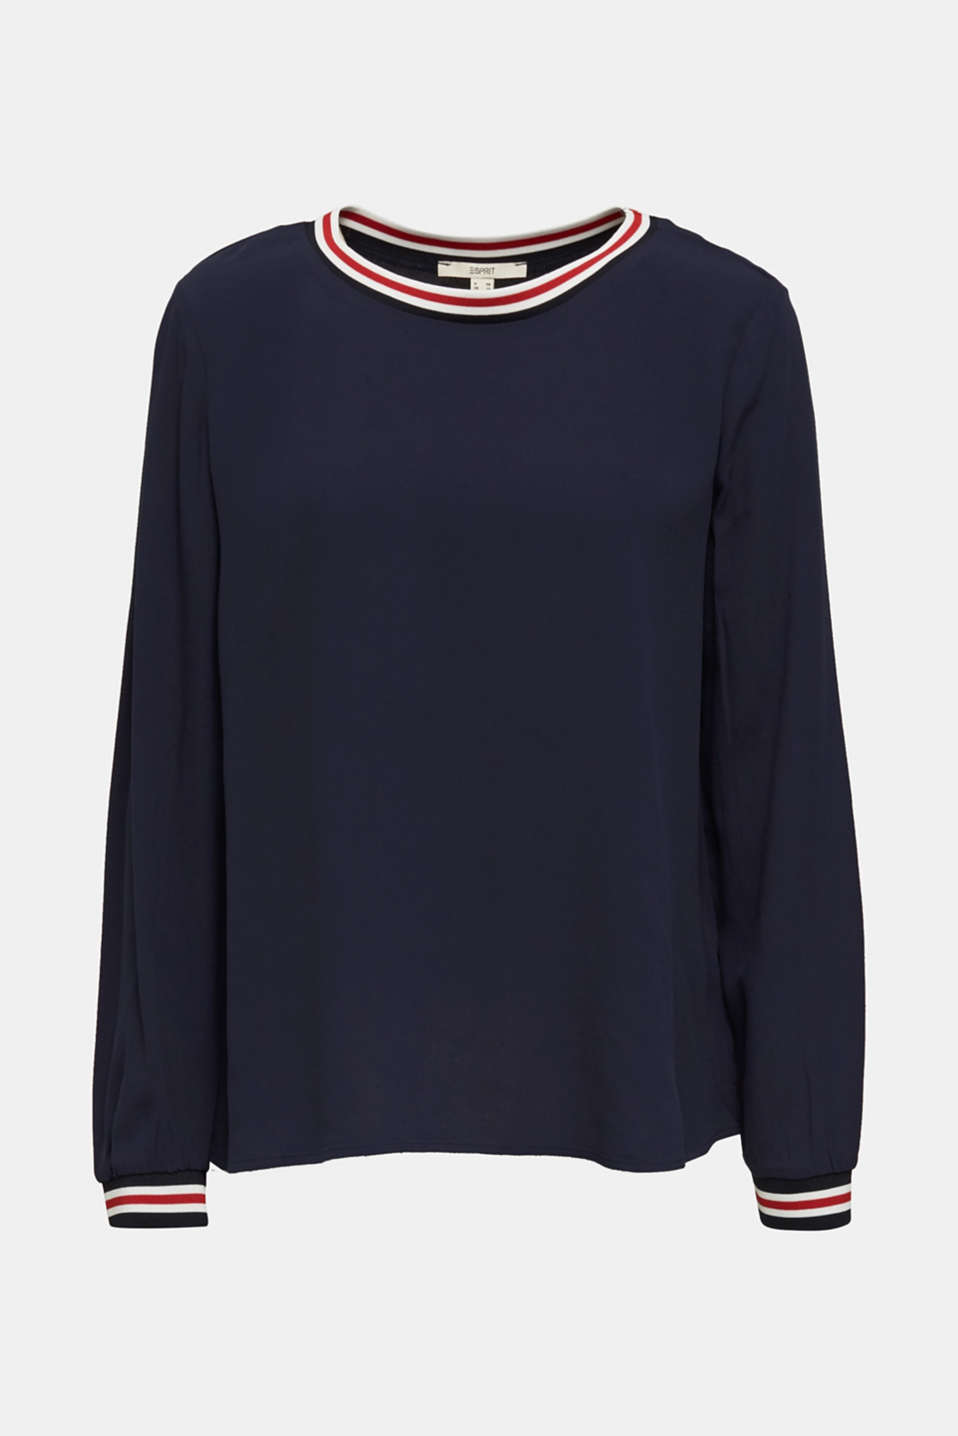 Long sleeve crêpe top with striped cuffs, NAVY, detail image number 6